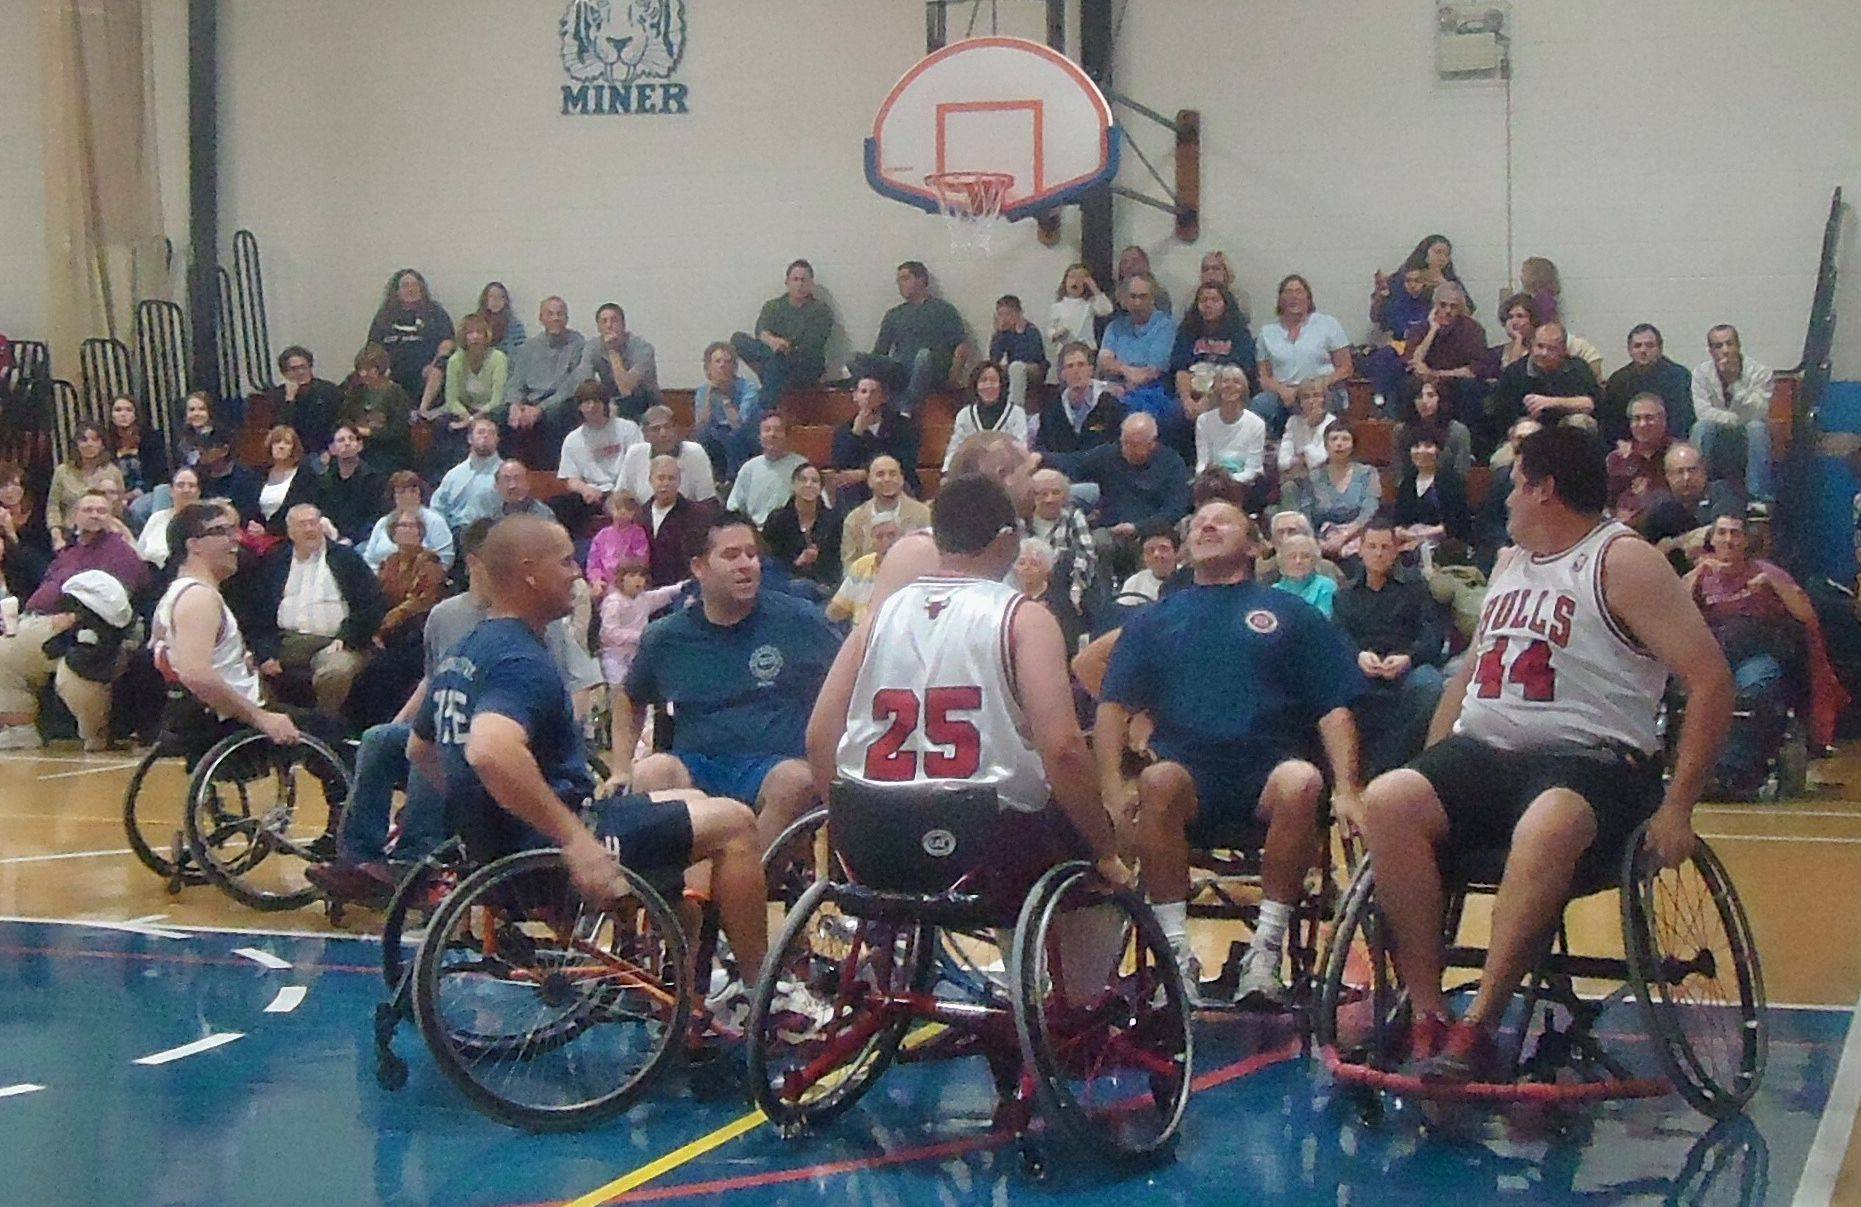 Arlington Heights and Buffalo Grove firefighters will try to beat the Chicago Wheelchair Bulls when they play Nov. 10.